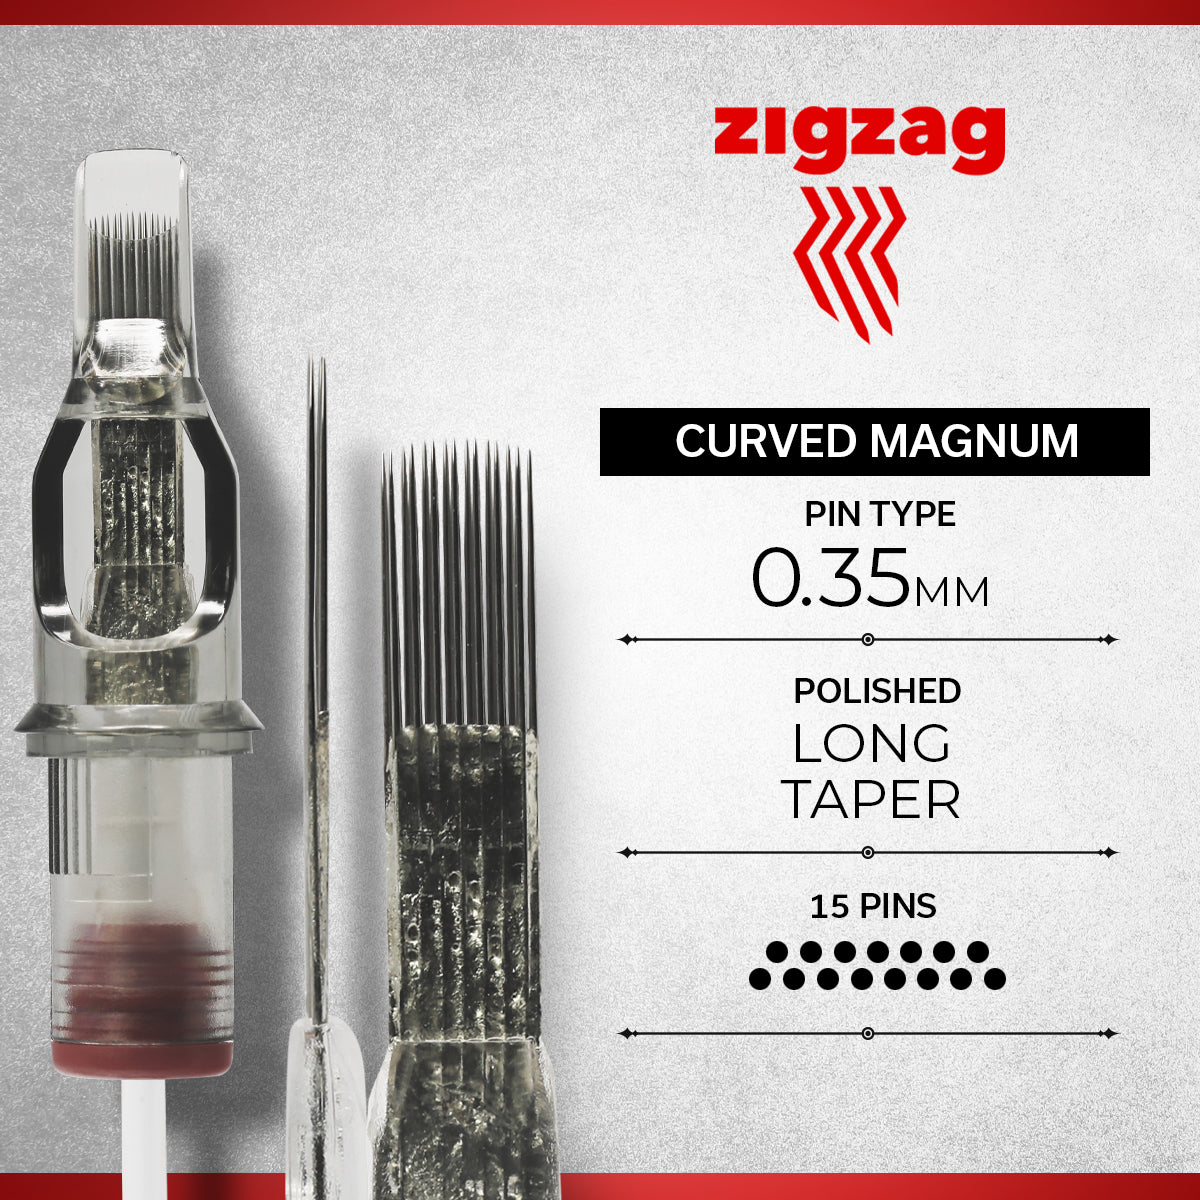 ZIGZAG - CURVED MAGNUM REGULAR, Needles, - Inktrek